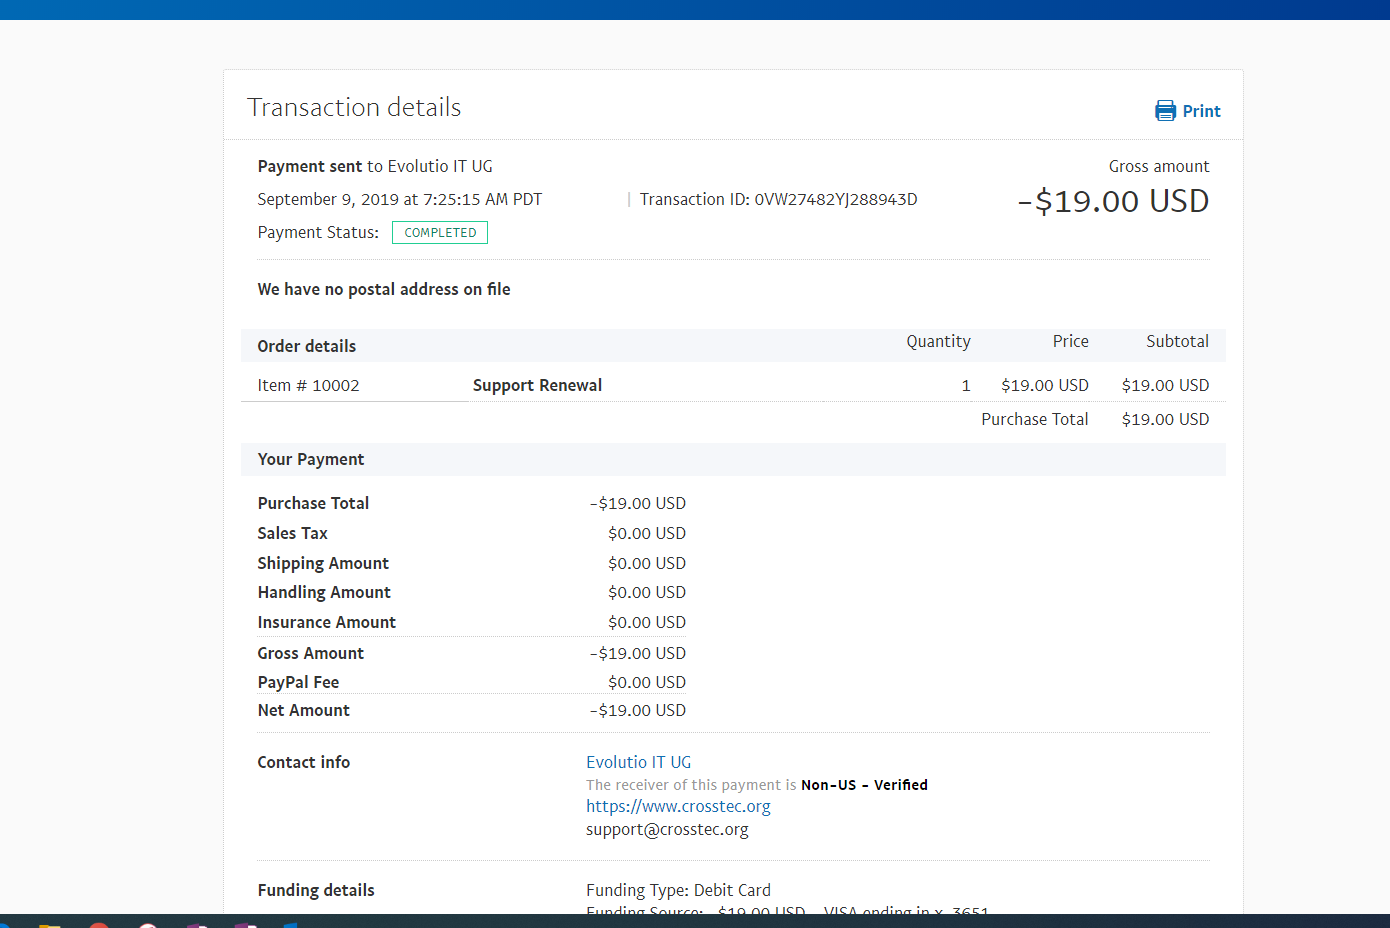 Transactiondetails-PayPal-GoogleChrome2019-09-0917.59.56.png